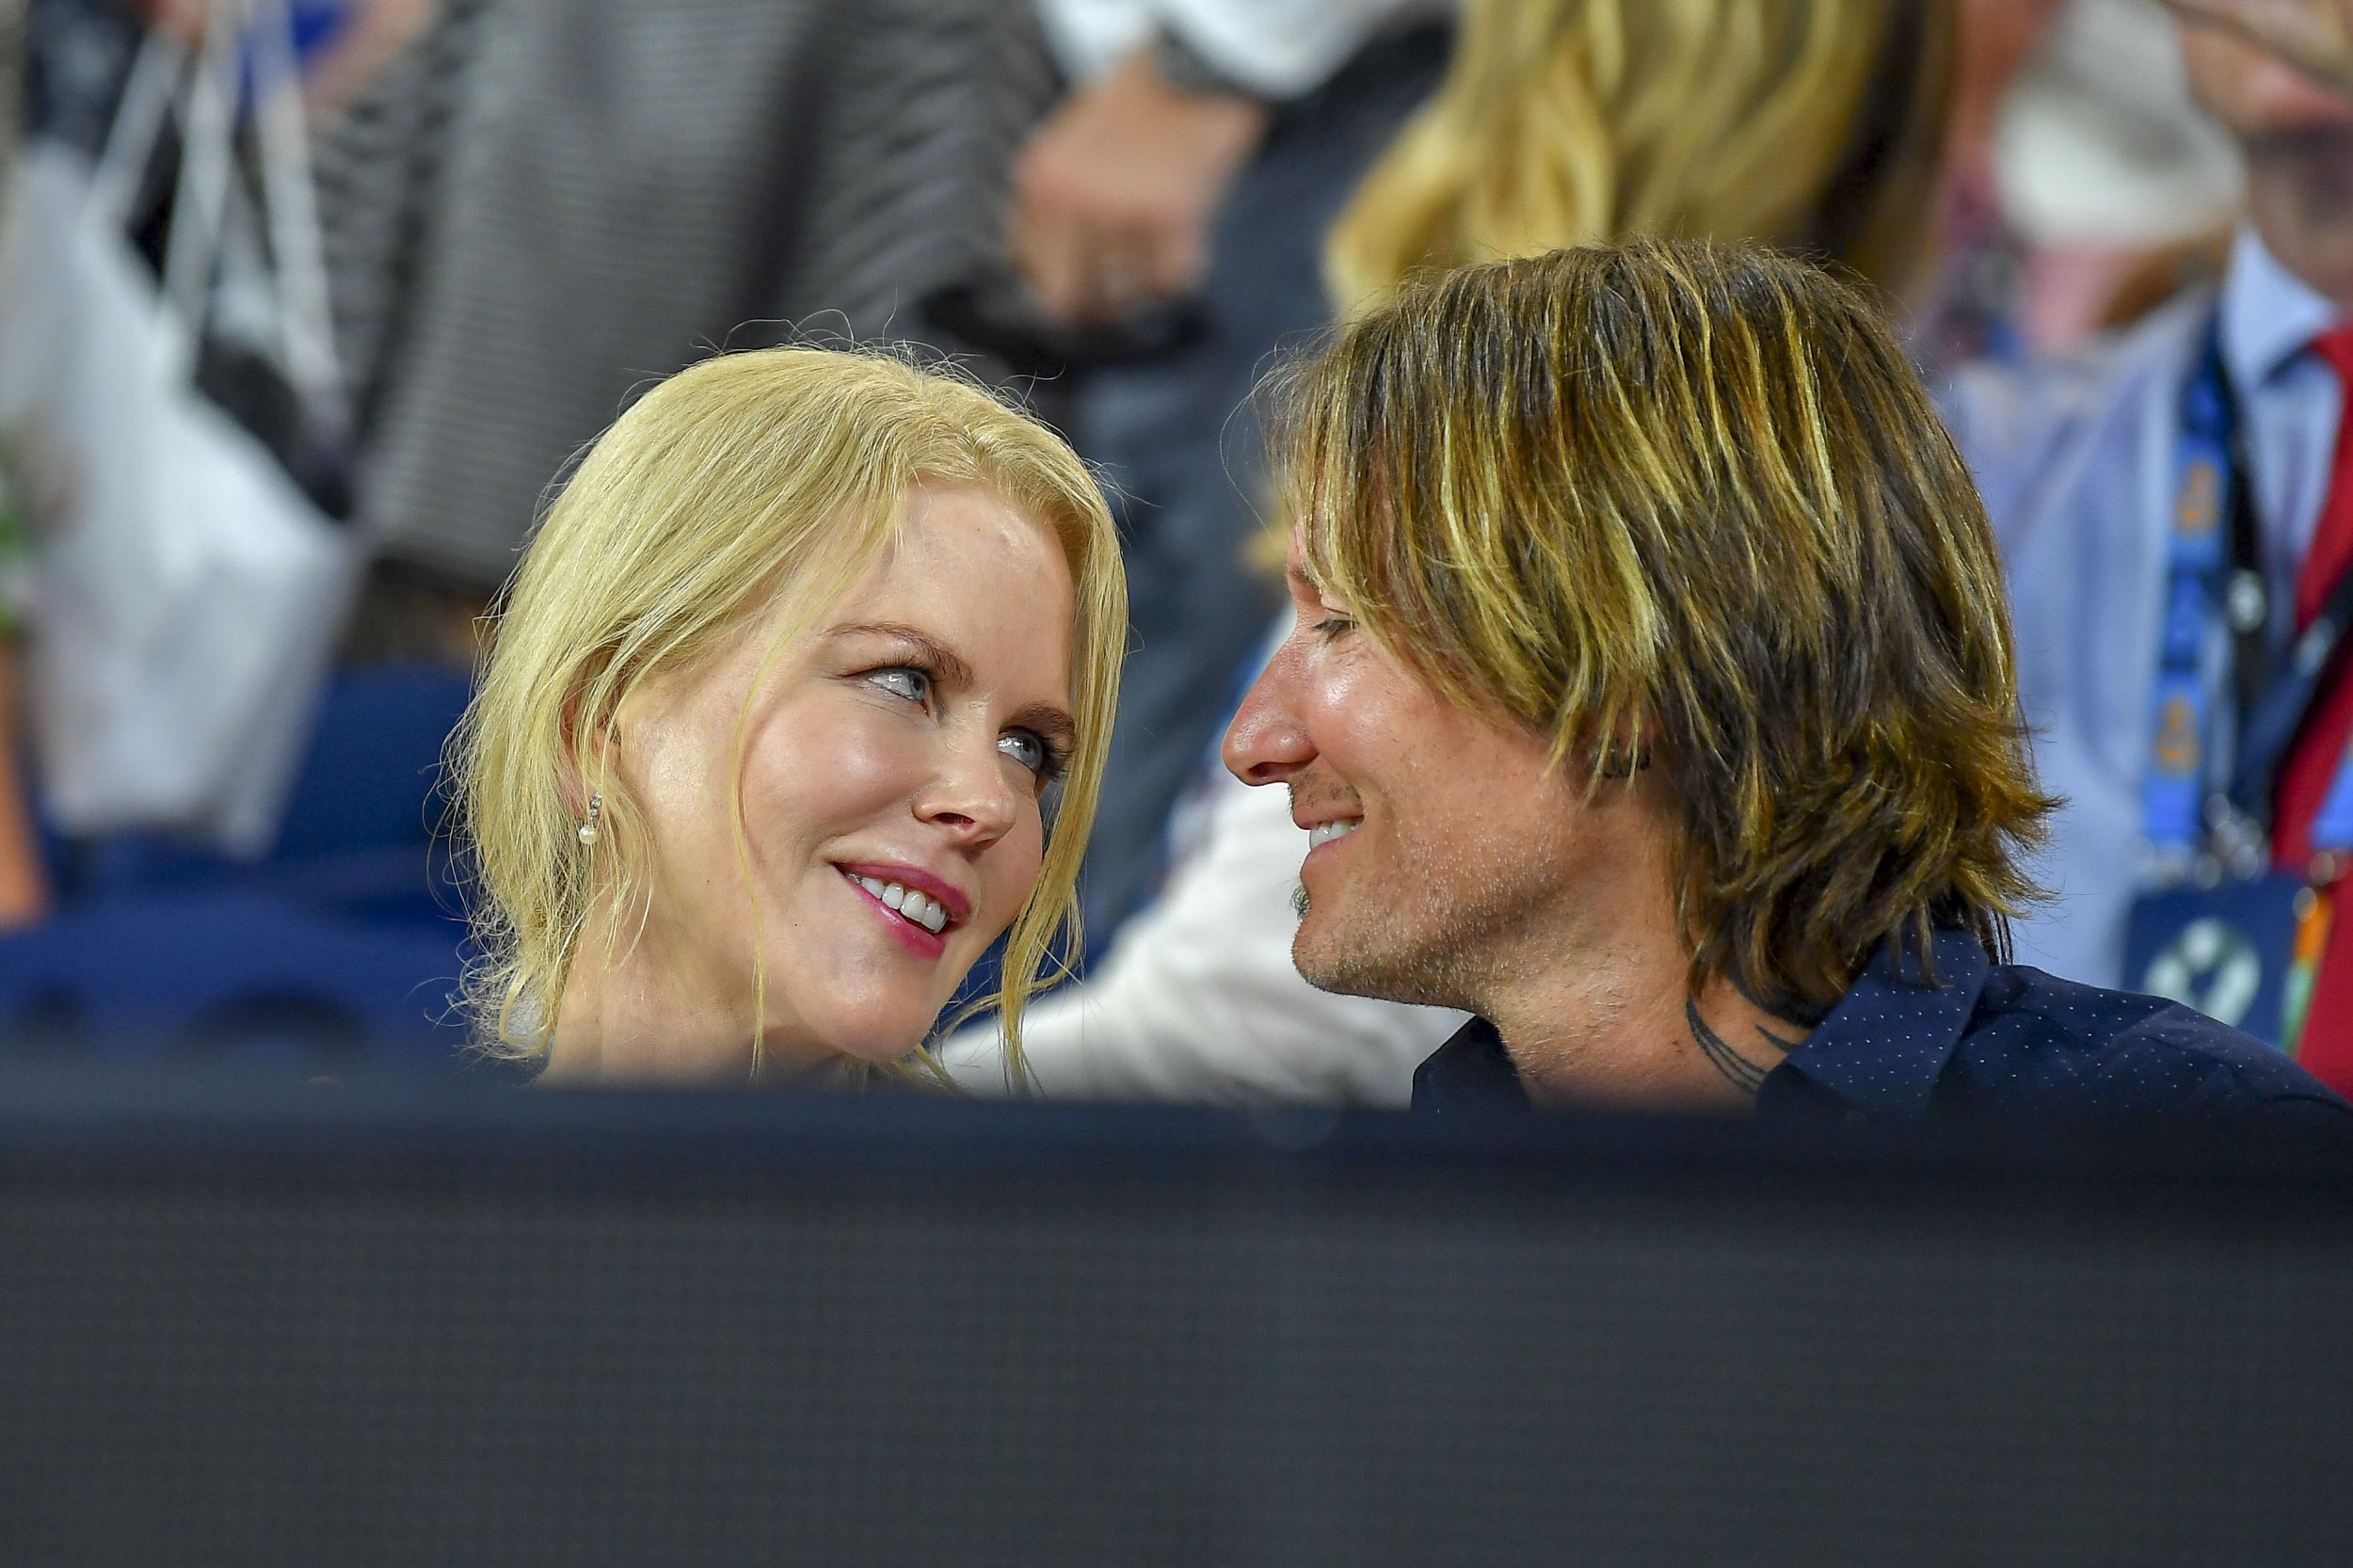 Nicole Kidman and husband Keith Urban share cute kiss at the Australian Open